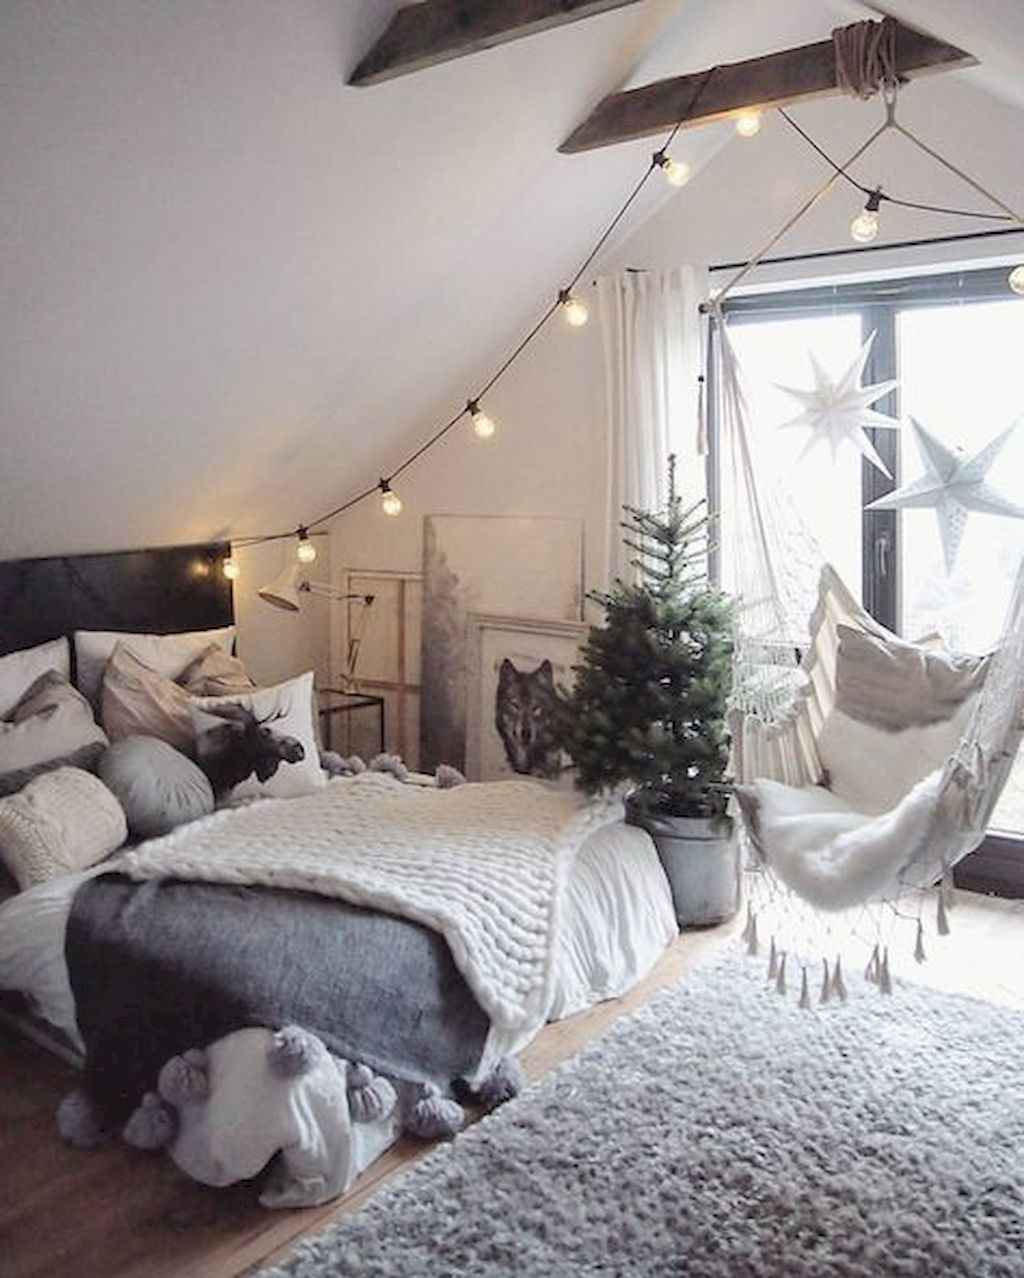 Awesome bedroom decoration ideas (60)